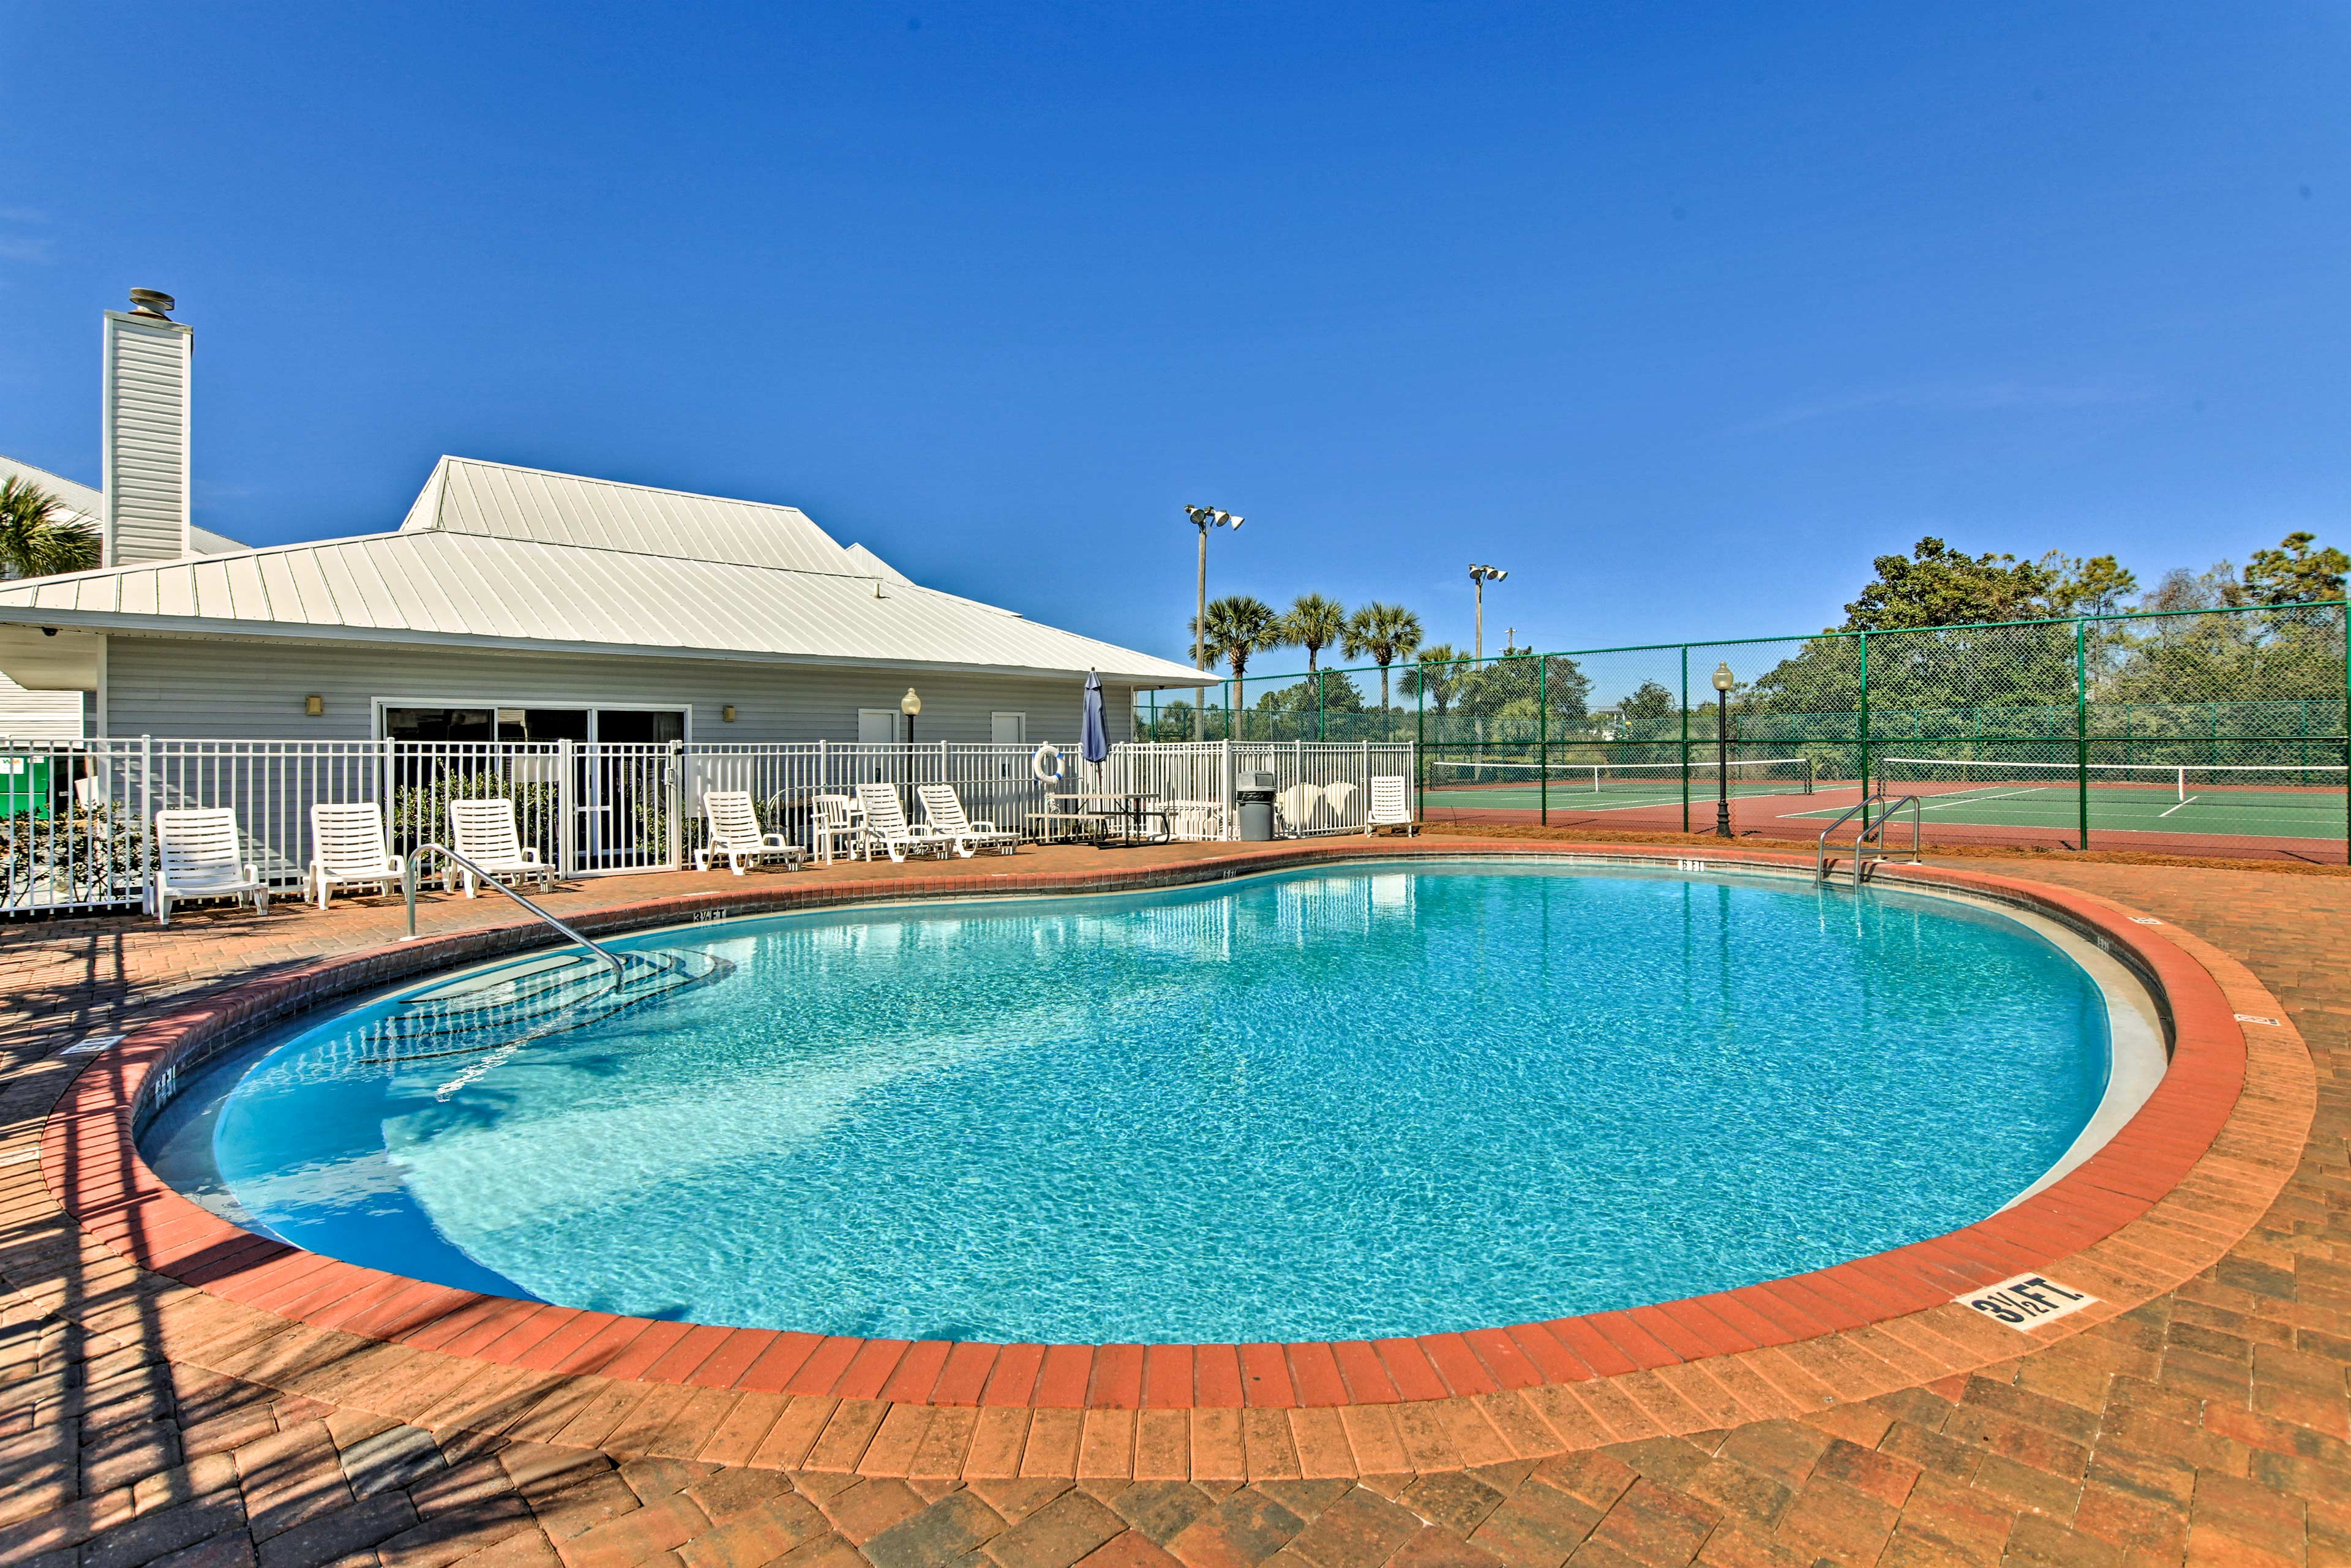 Keep up your fitness and swim some laps in the outdoor pool.